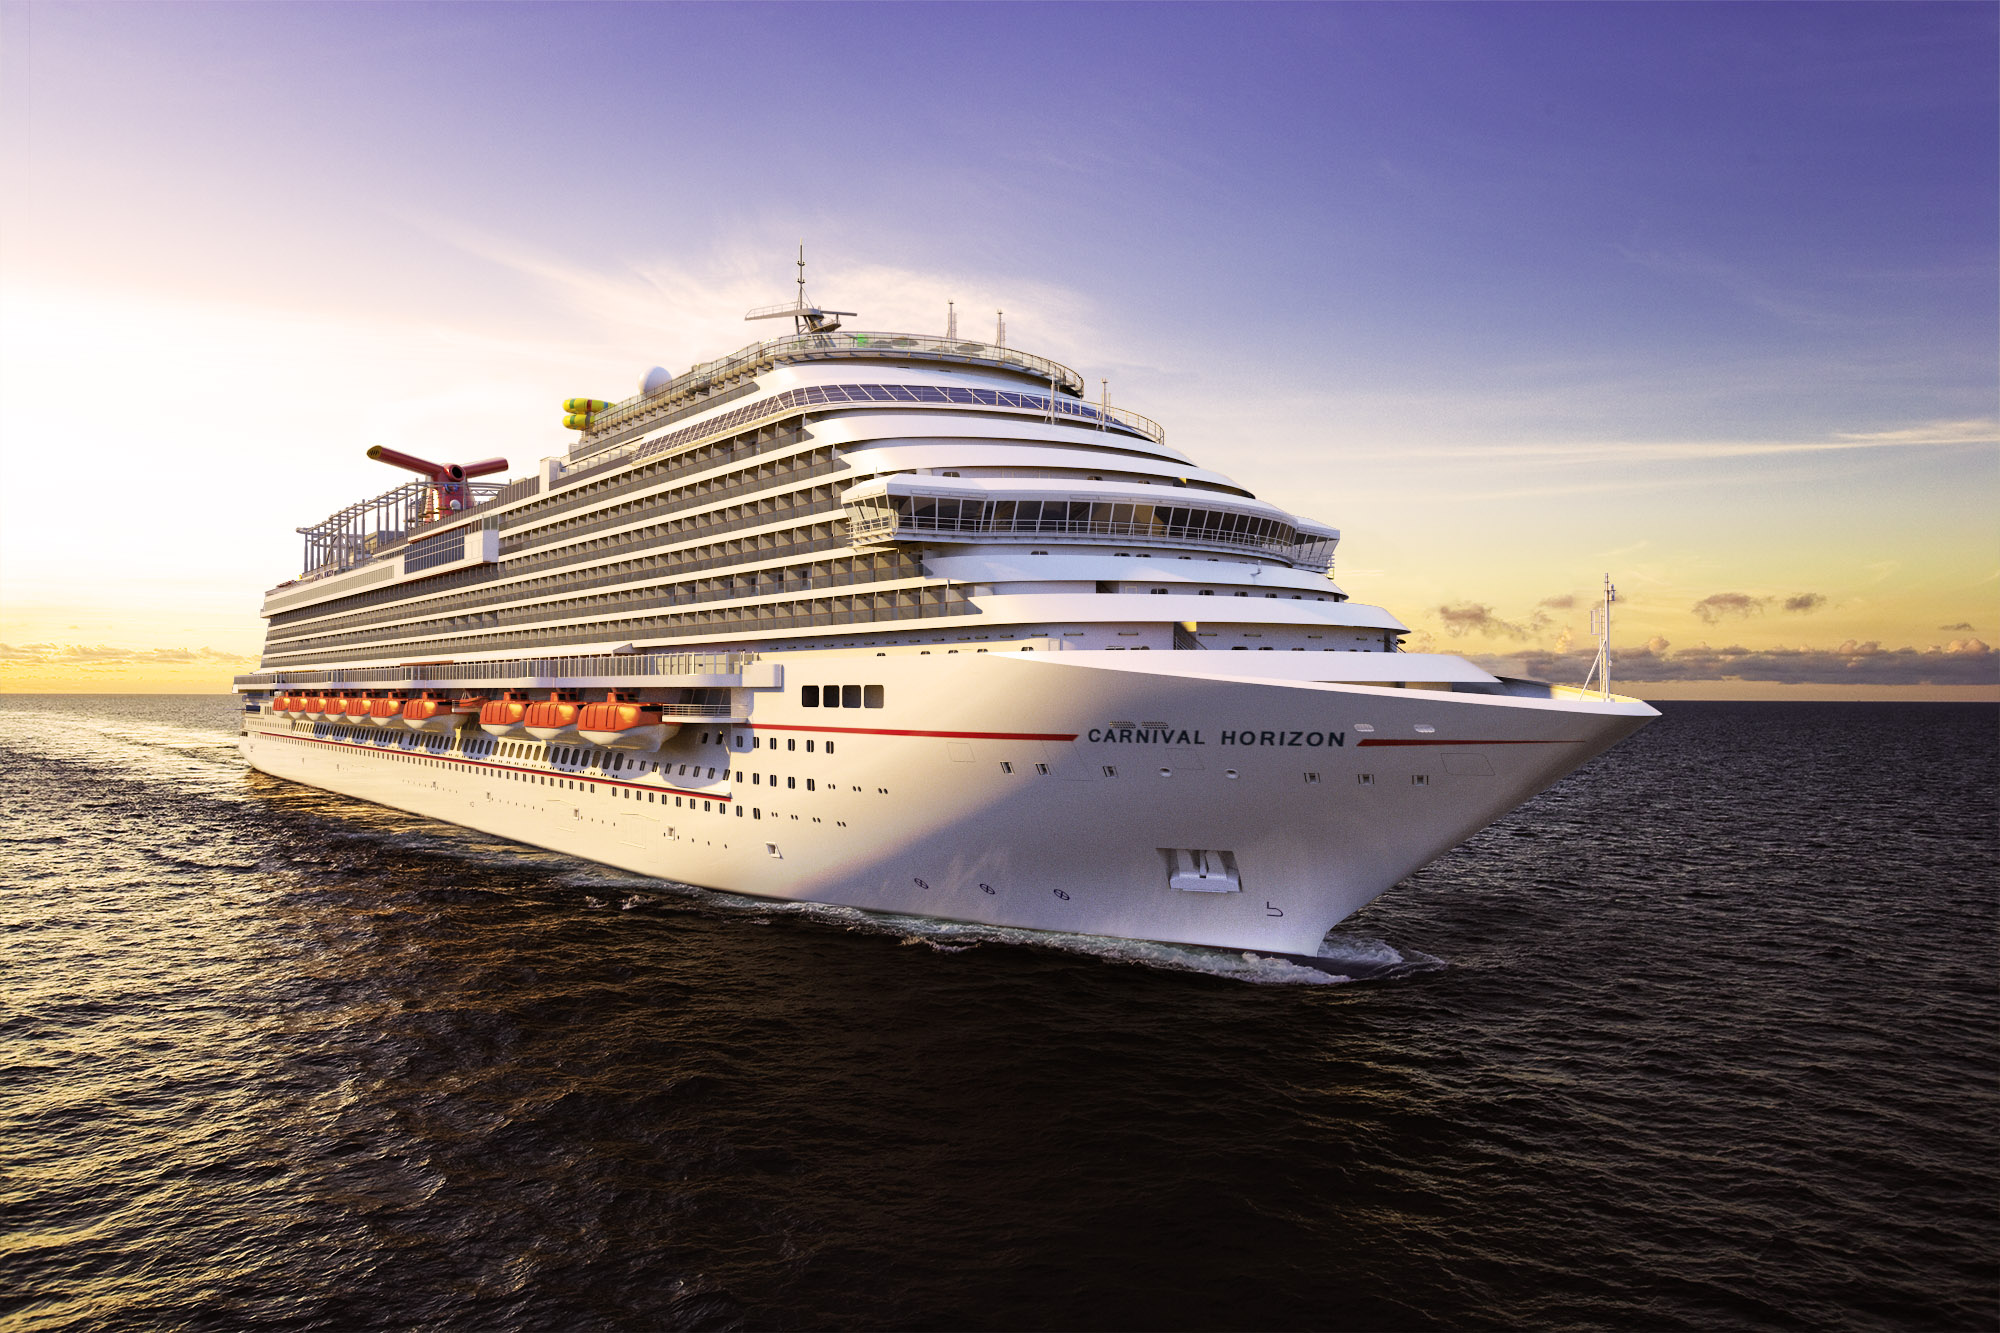 Online Reservations Now Open for Carnival Horizon  Specialty Dining Venues; Ship Set to Debut in Spring 2018